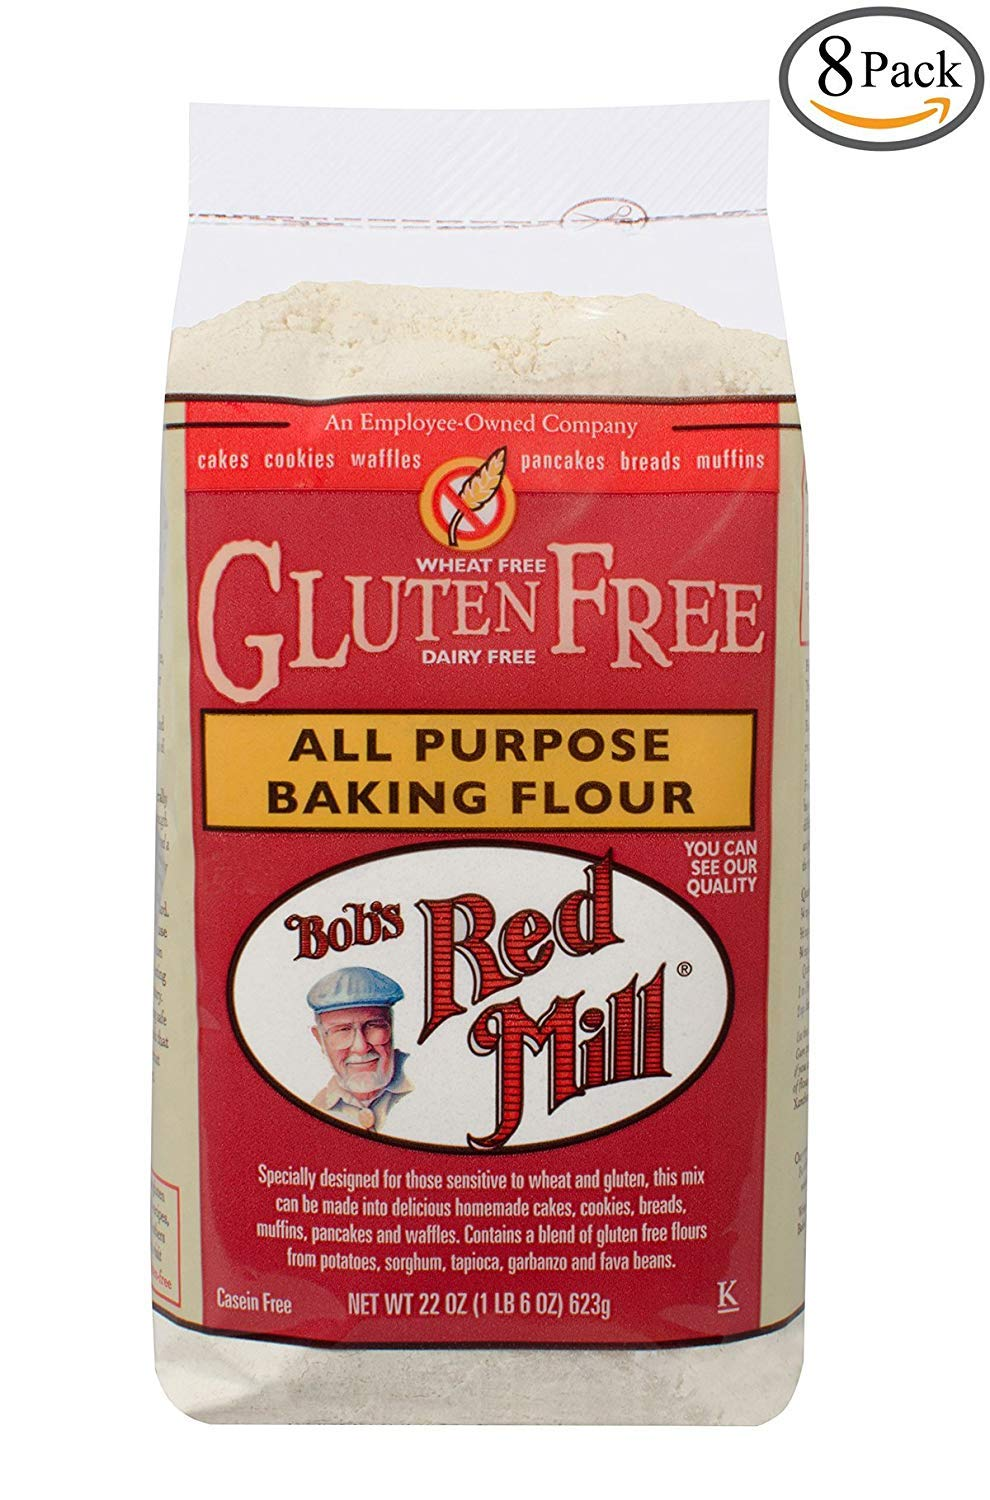 Bobs Red Mill Gluten Free All-Purpose Baking Flour, 22-ounce (Pack of 8) by Bob's Red Mill